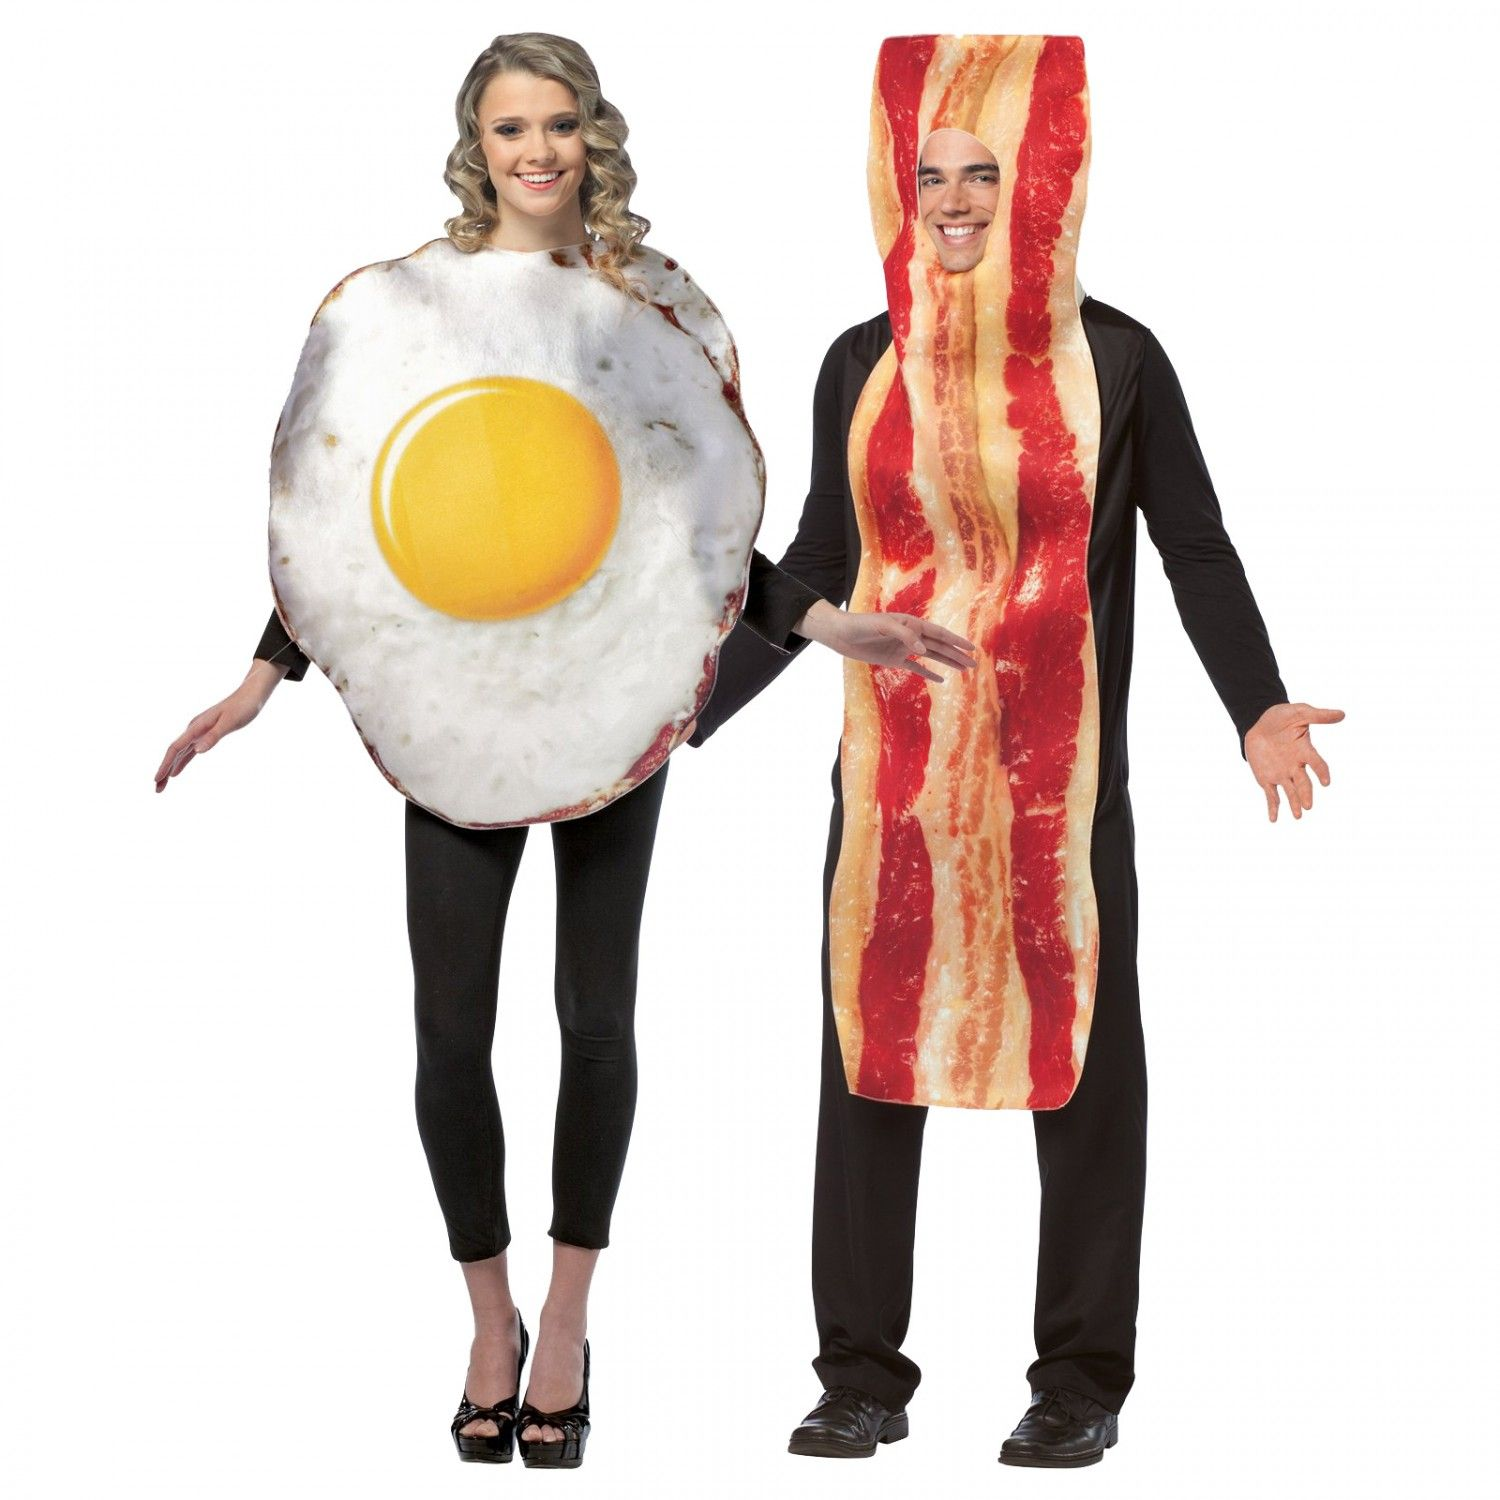 couples costumes bacon and eggs costume adult costumes for couples costume ideas. Black Bedroom Furniture Sets. Home Design Ideas